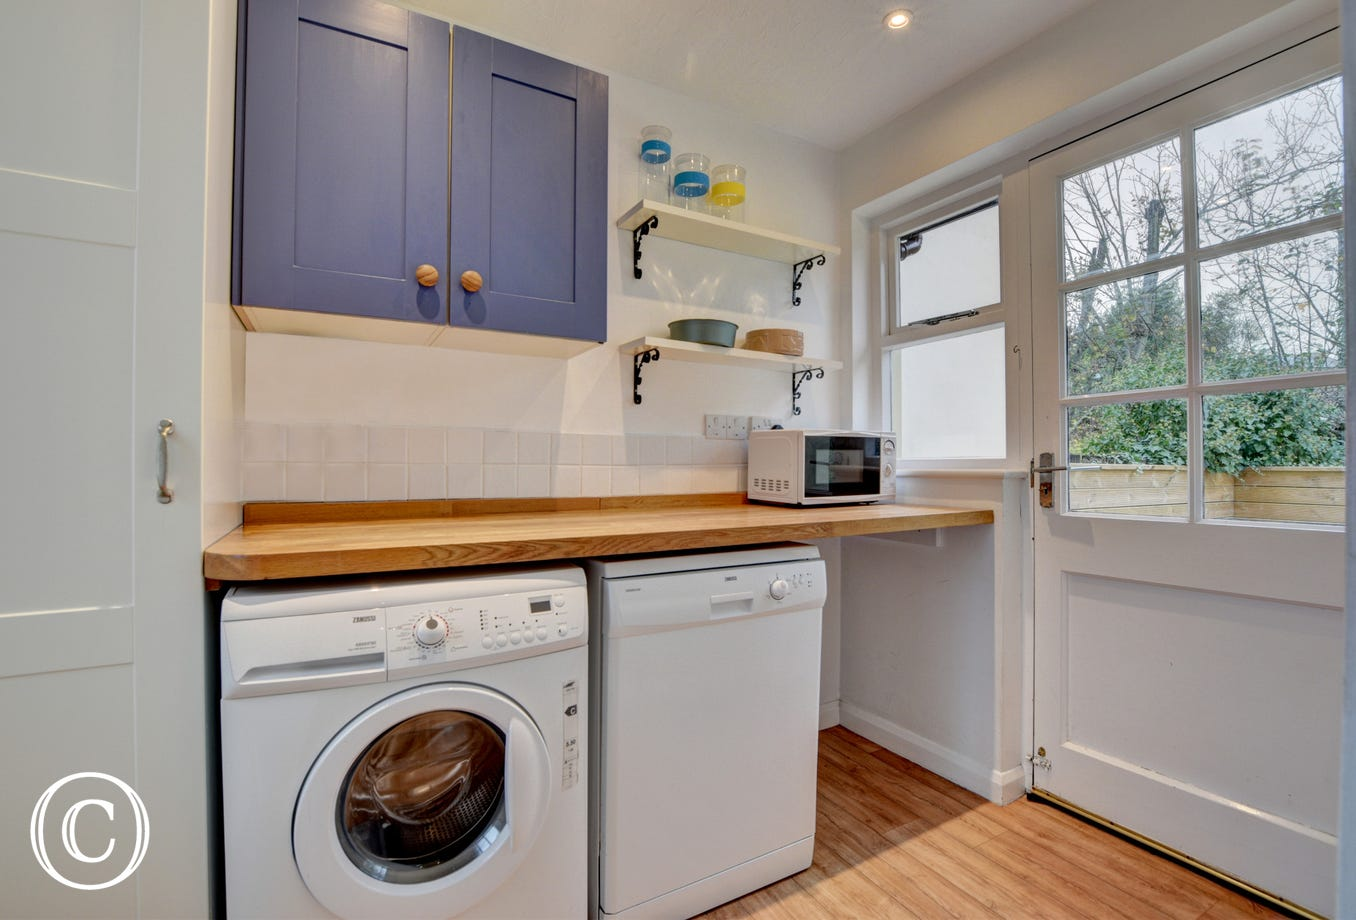 The useful utility room with dishwasher and washer/dryer is just off the kitchen